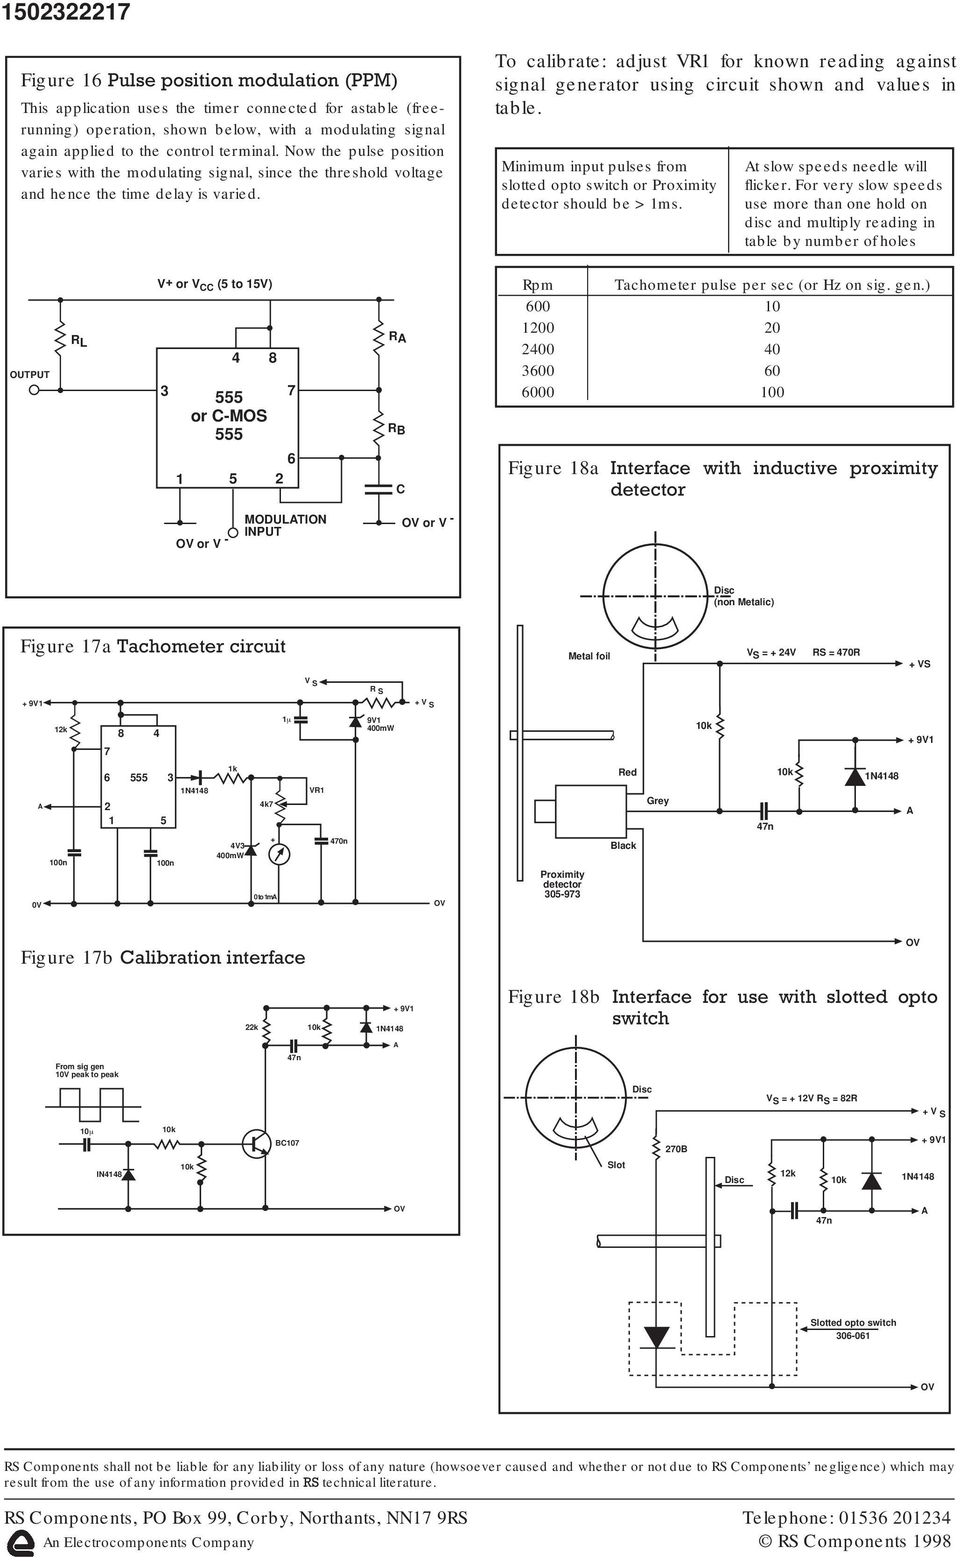 Data Sheet Ic Timers 555 And 556 Features Typical Absolute Step 7 Timer Astable Mode Duty Cycle To Calibrate Adjust V For Known Reading Against Signal Generator Using Circuit Shown Values